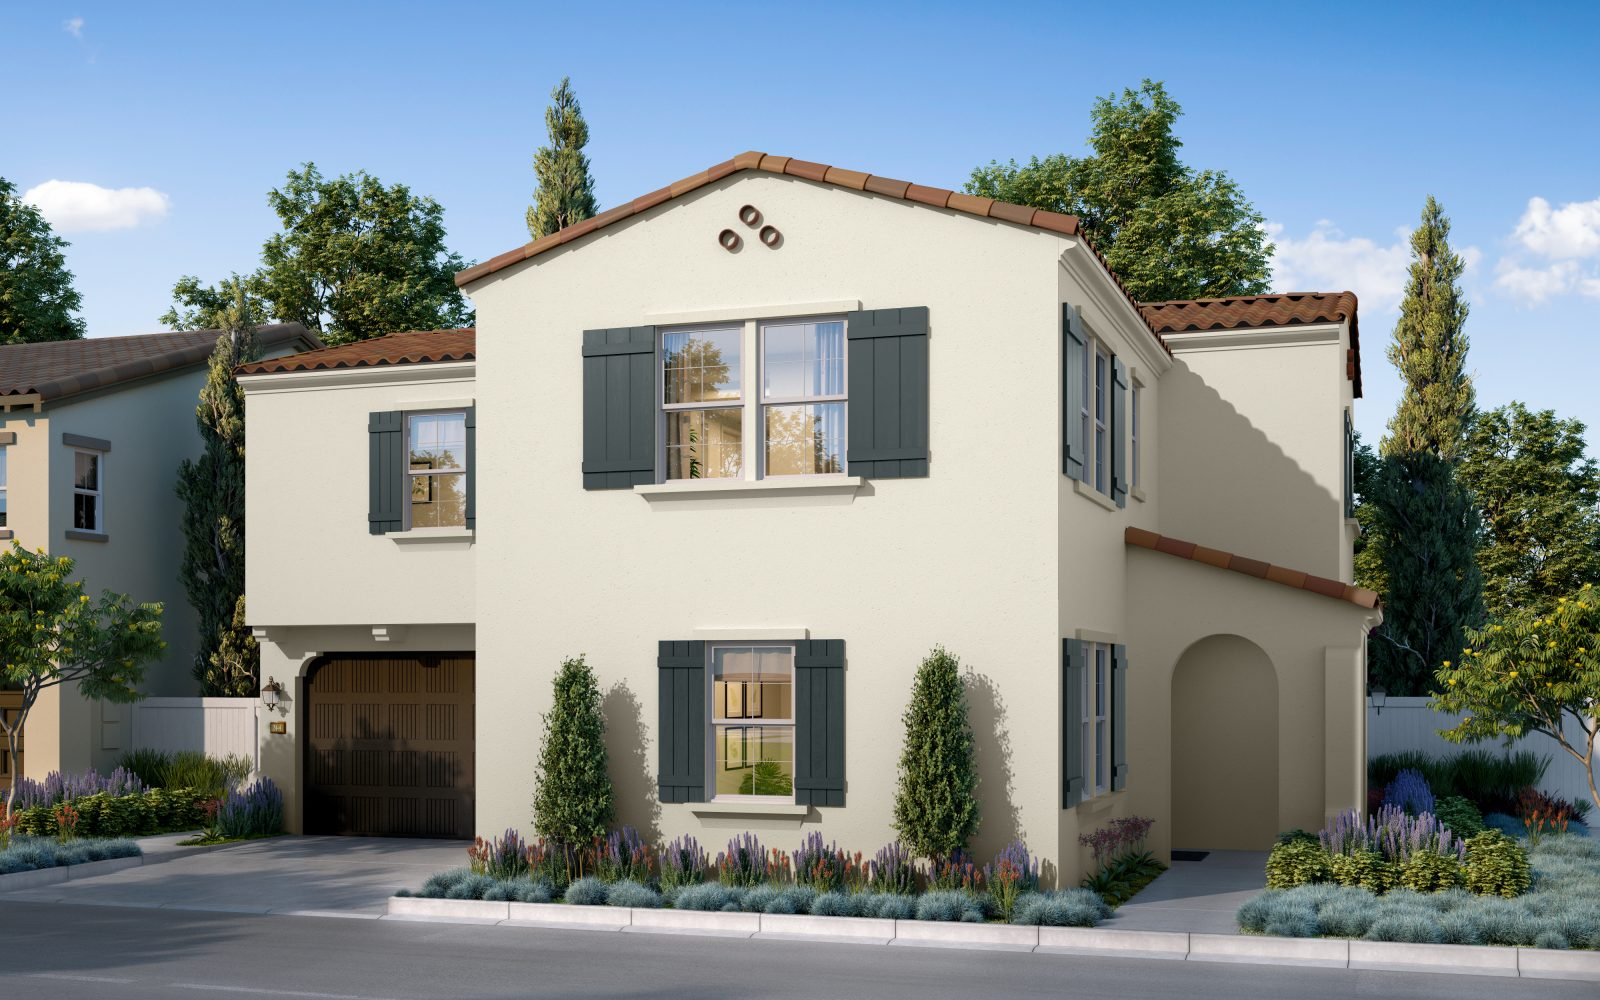 New home development in San Diego County at Vientos at Rancho Tesoro